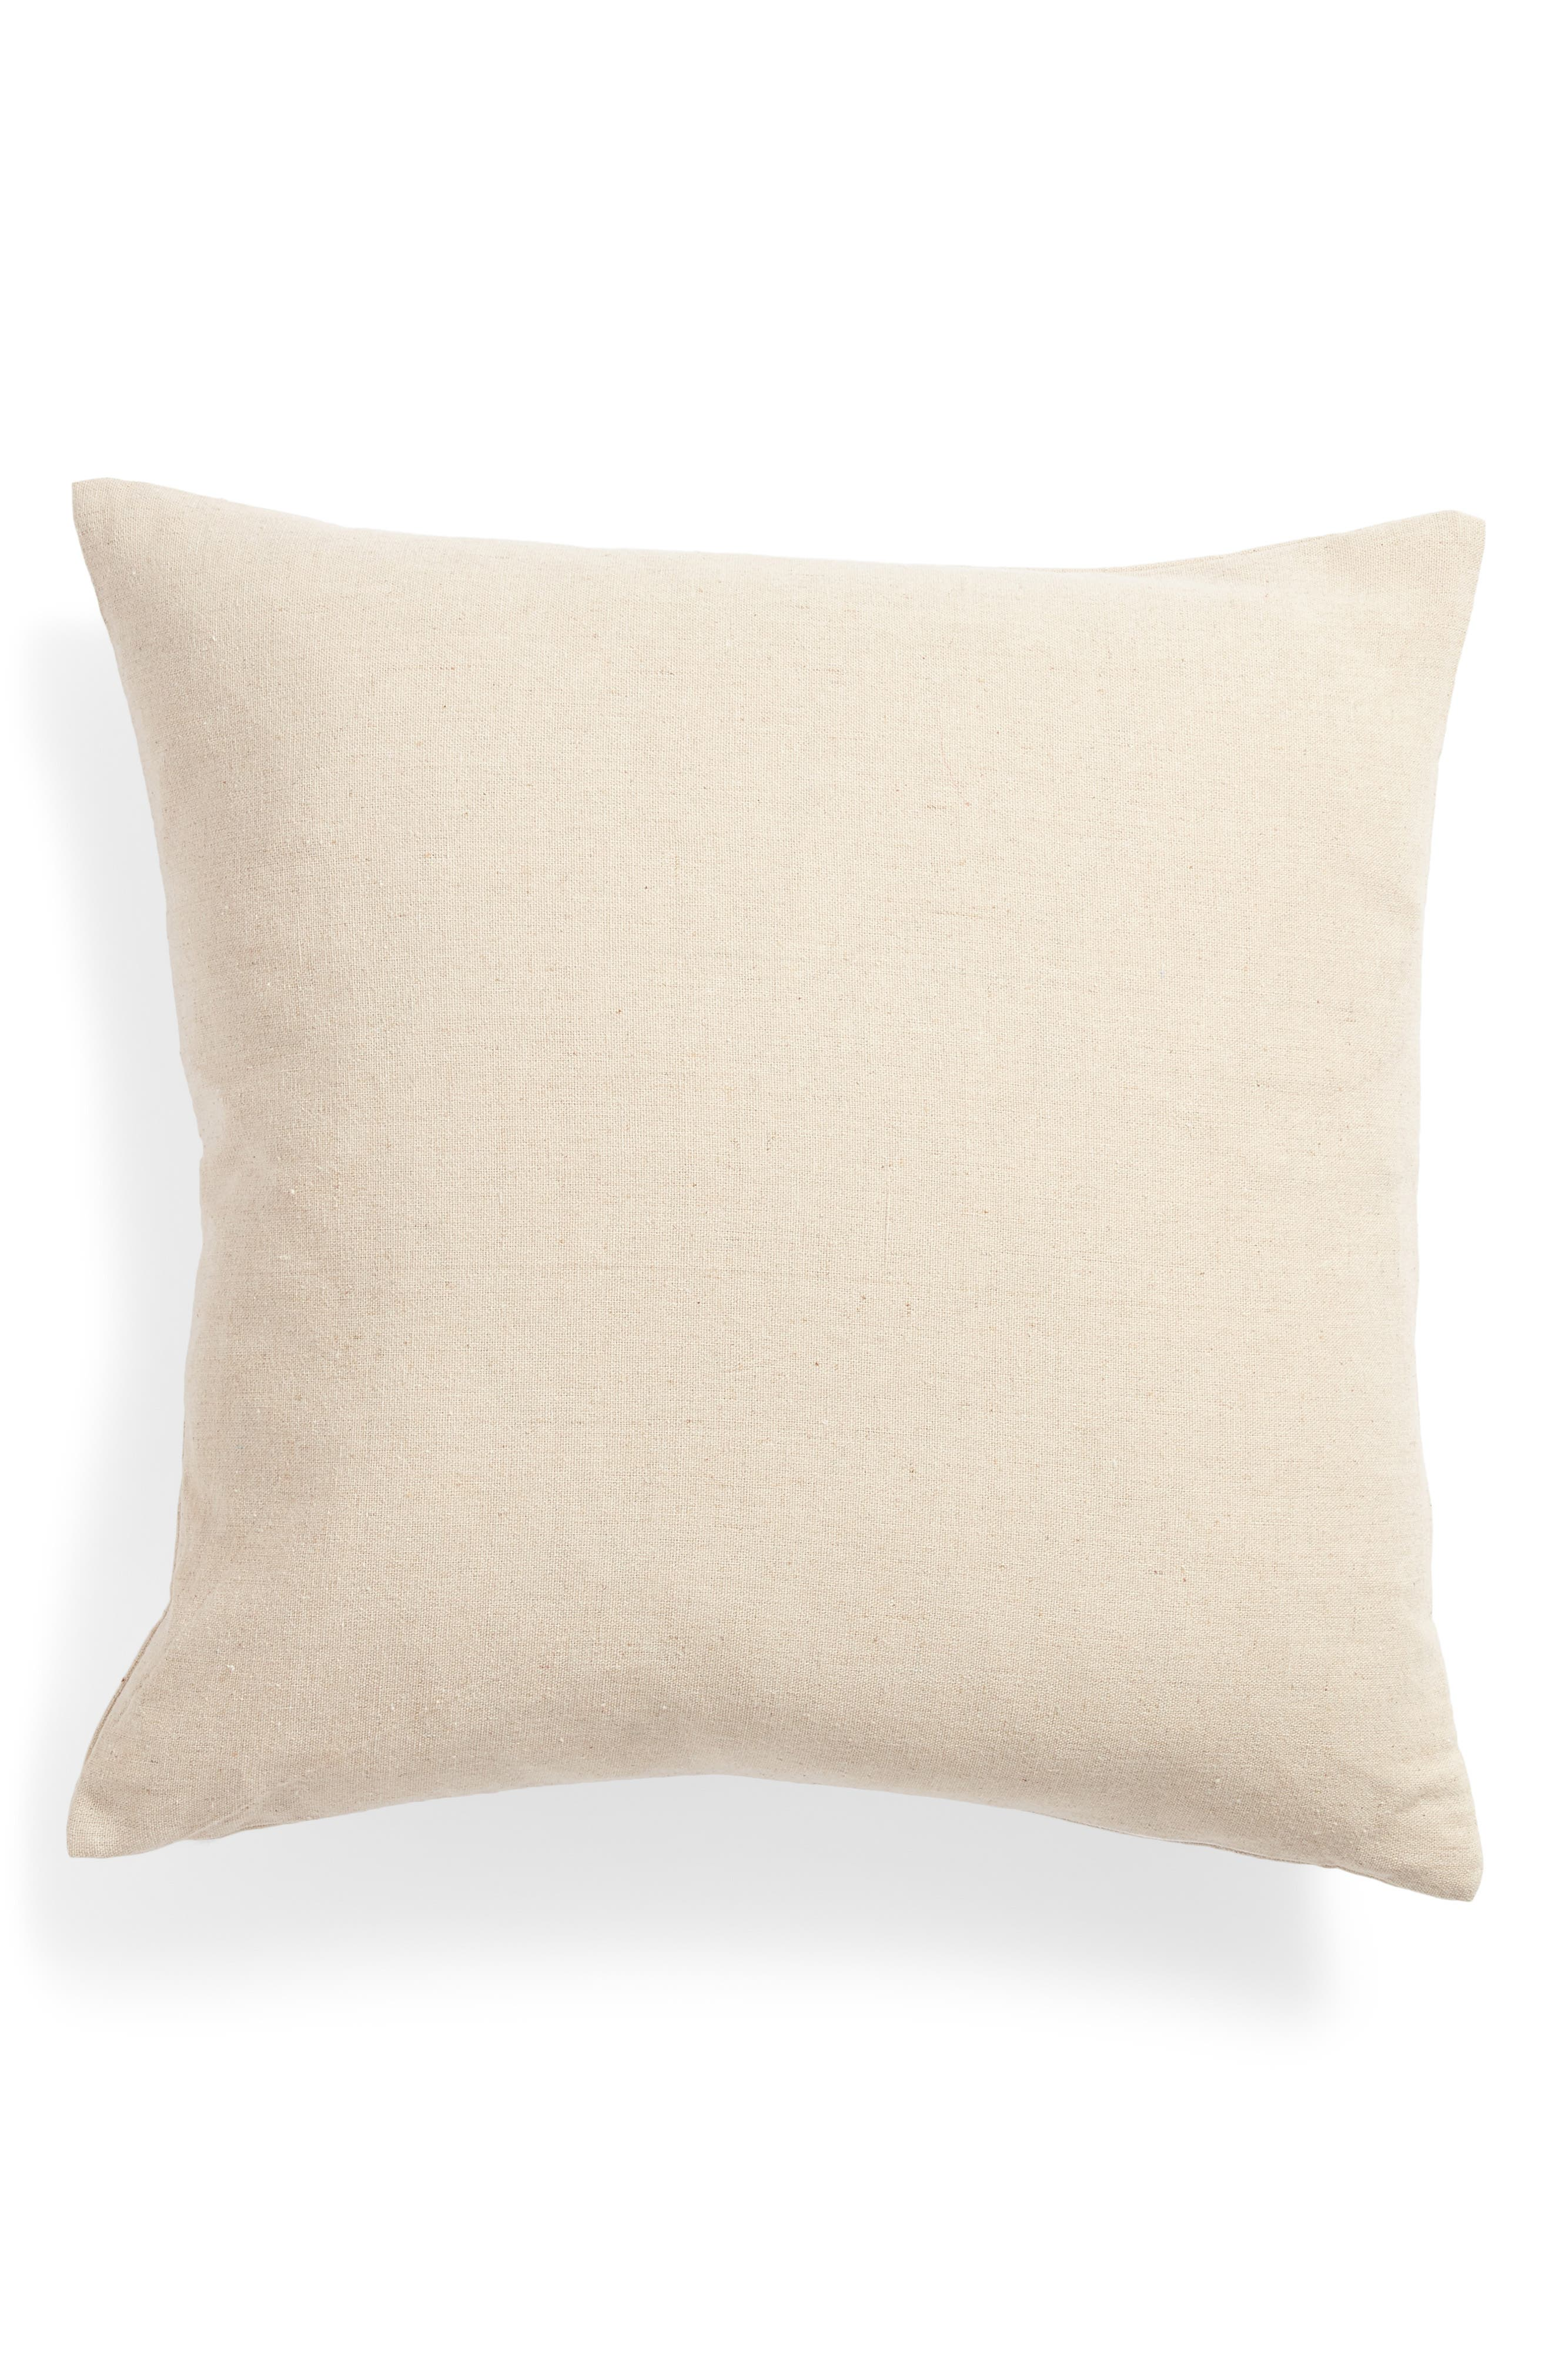 Oh Honey Accent Pillow,                             Alternate thumbnail 2, color,                             Grey